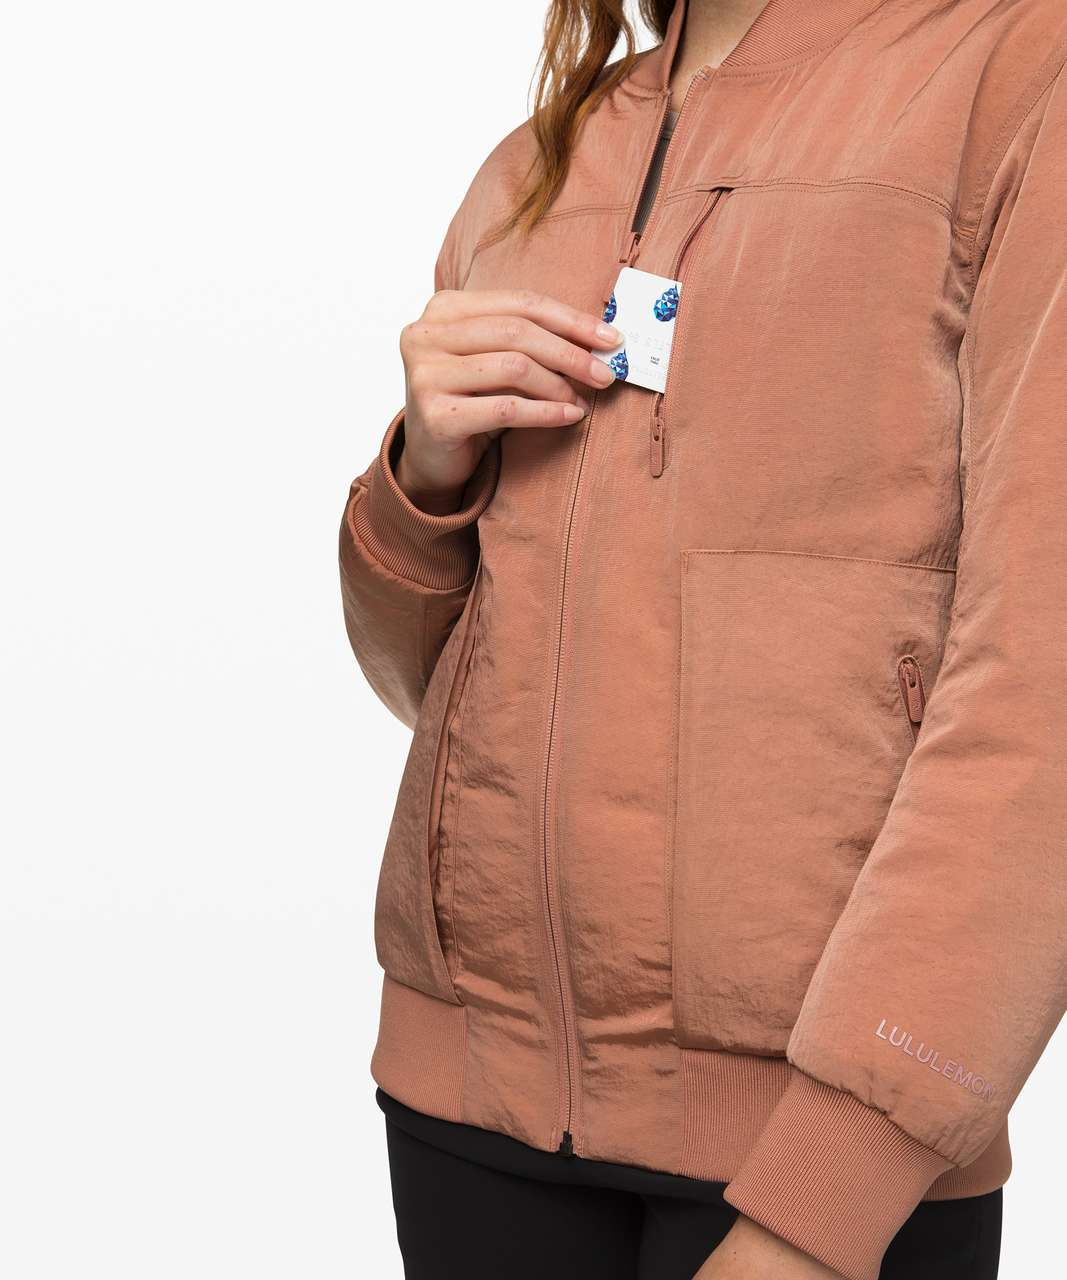 Lululemon Roam Far Bomber - Chalky Rose